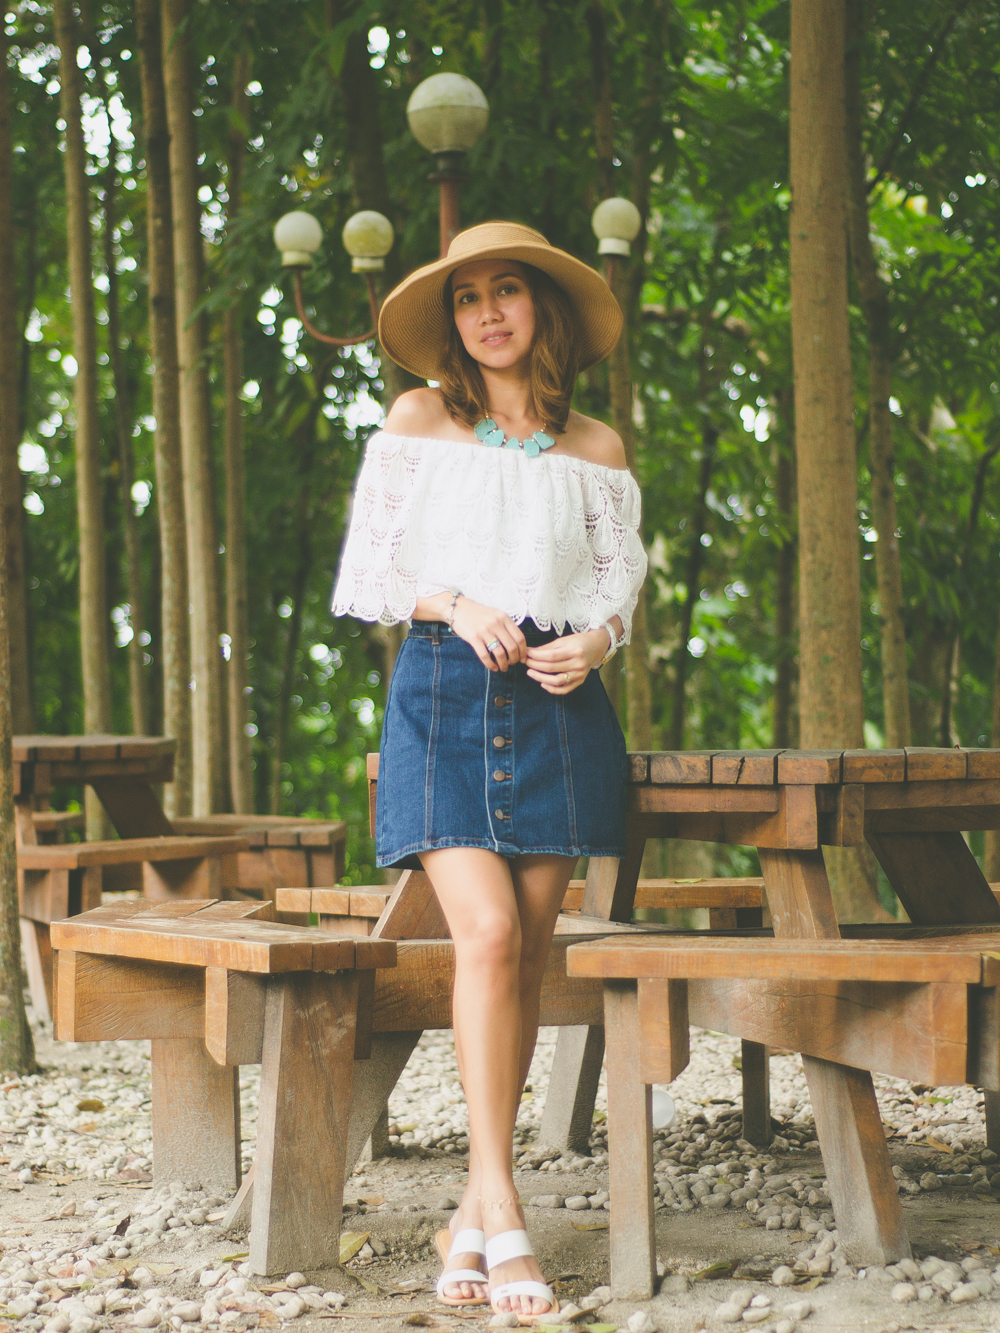 Alchemy of Fashion, Off Shoulder Top, Wide brimmed hat, Turquoise necklace, Denim Button-front skirt, A-Line Skirt, Seventies Trend, 70s Fashion, Celine Sandals, Denim A-line skirt, Cebu Fashion Blogger, Toni Pino-Oca, Cebu Fashion Blog, Cebu Blogger, Cebu Bloggers, Cebuana, Summer Outfit, Summer Style, Salty Ripples, Anklet